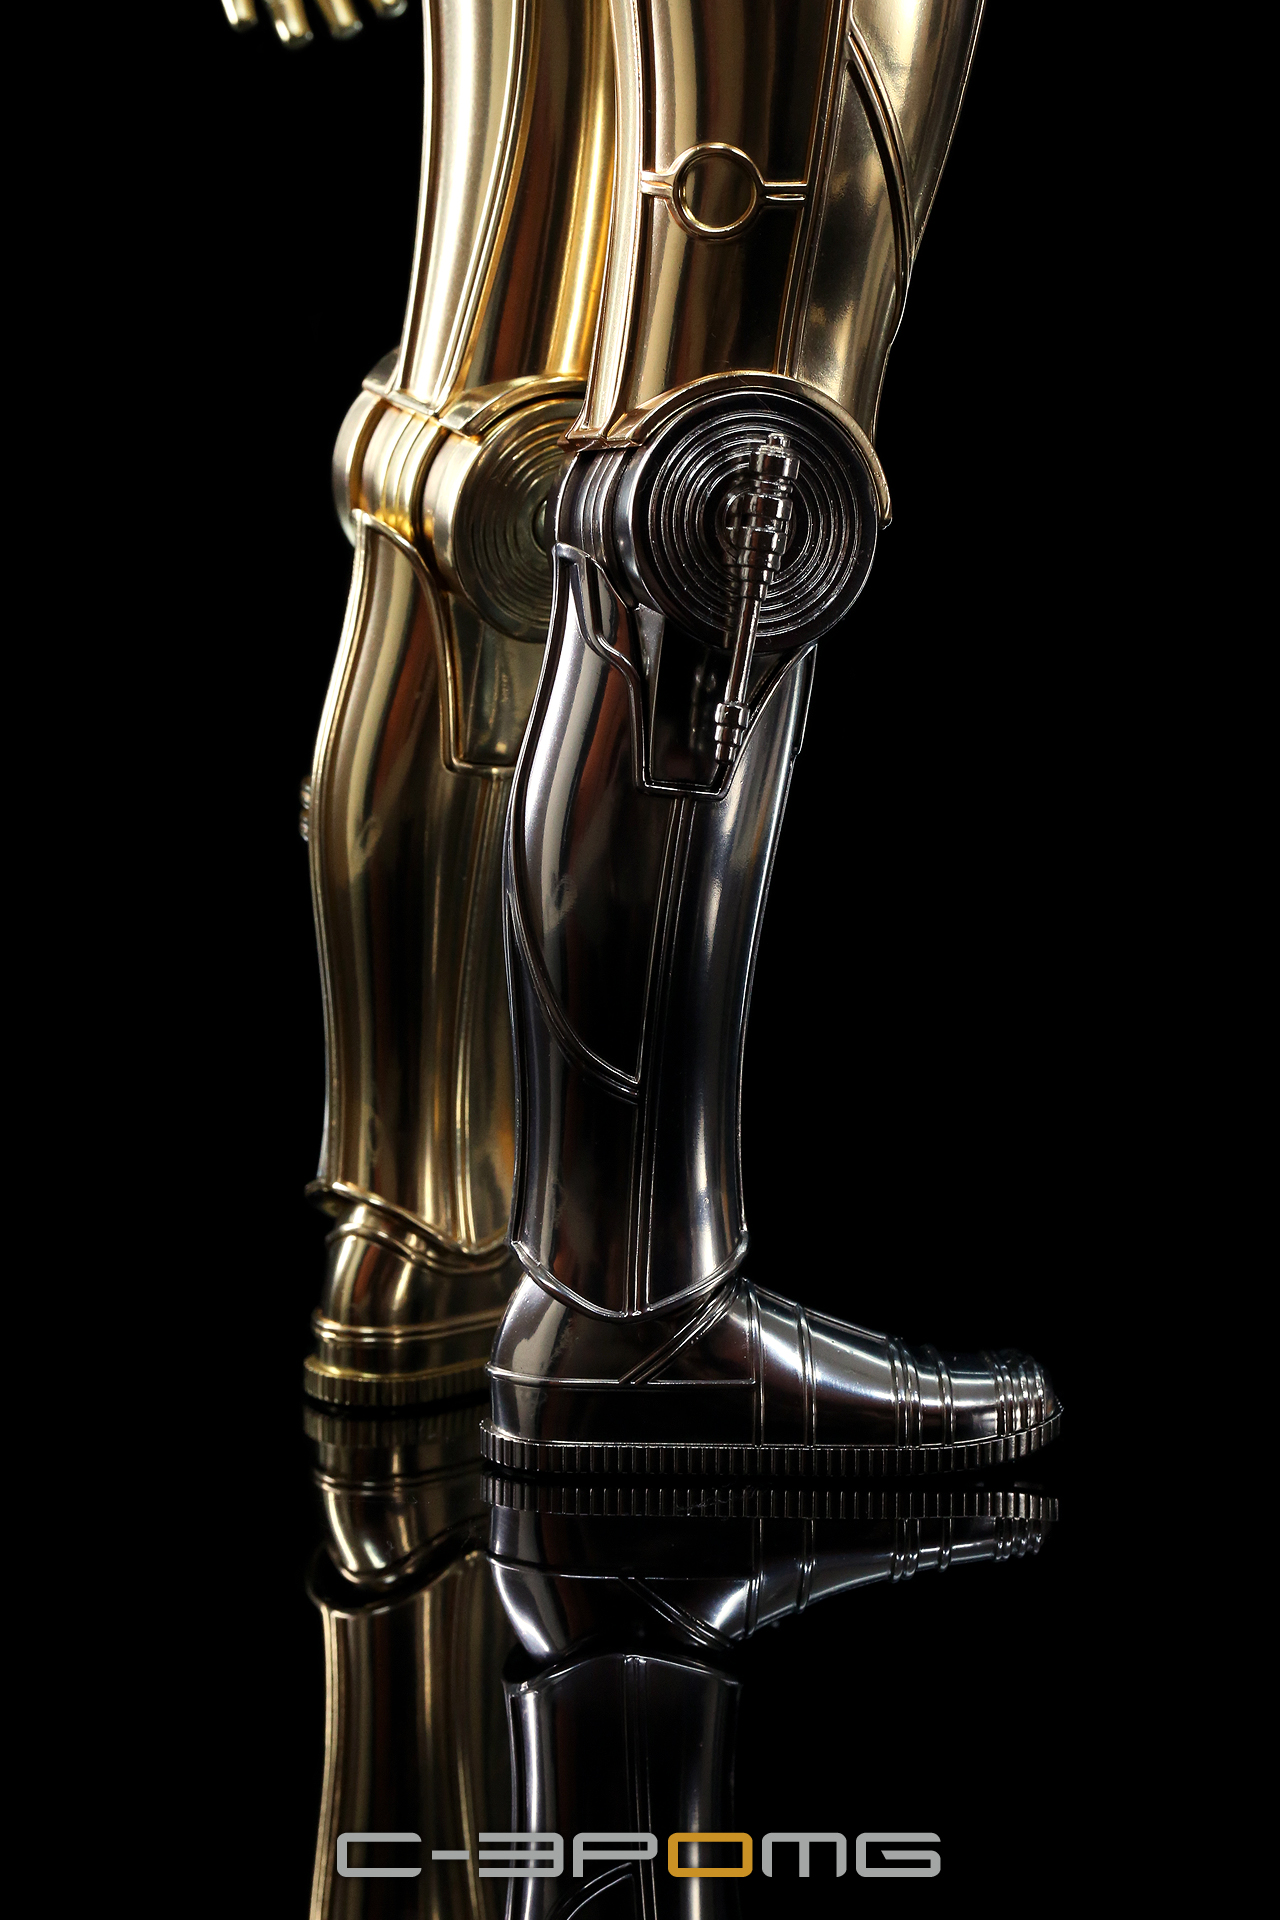 [Bandai] Star Wars: C-3PO - Perfect Model 1/6 scale - LANÇADO!!! - Página 2 C-3PO1136_zps85bb8e7f